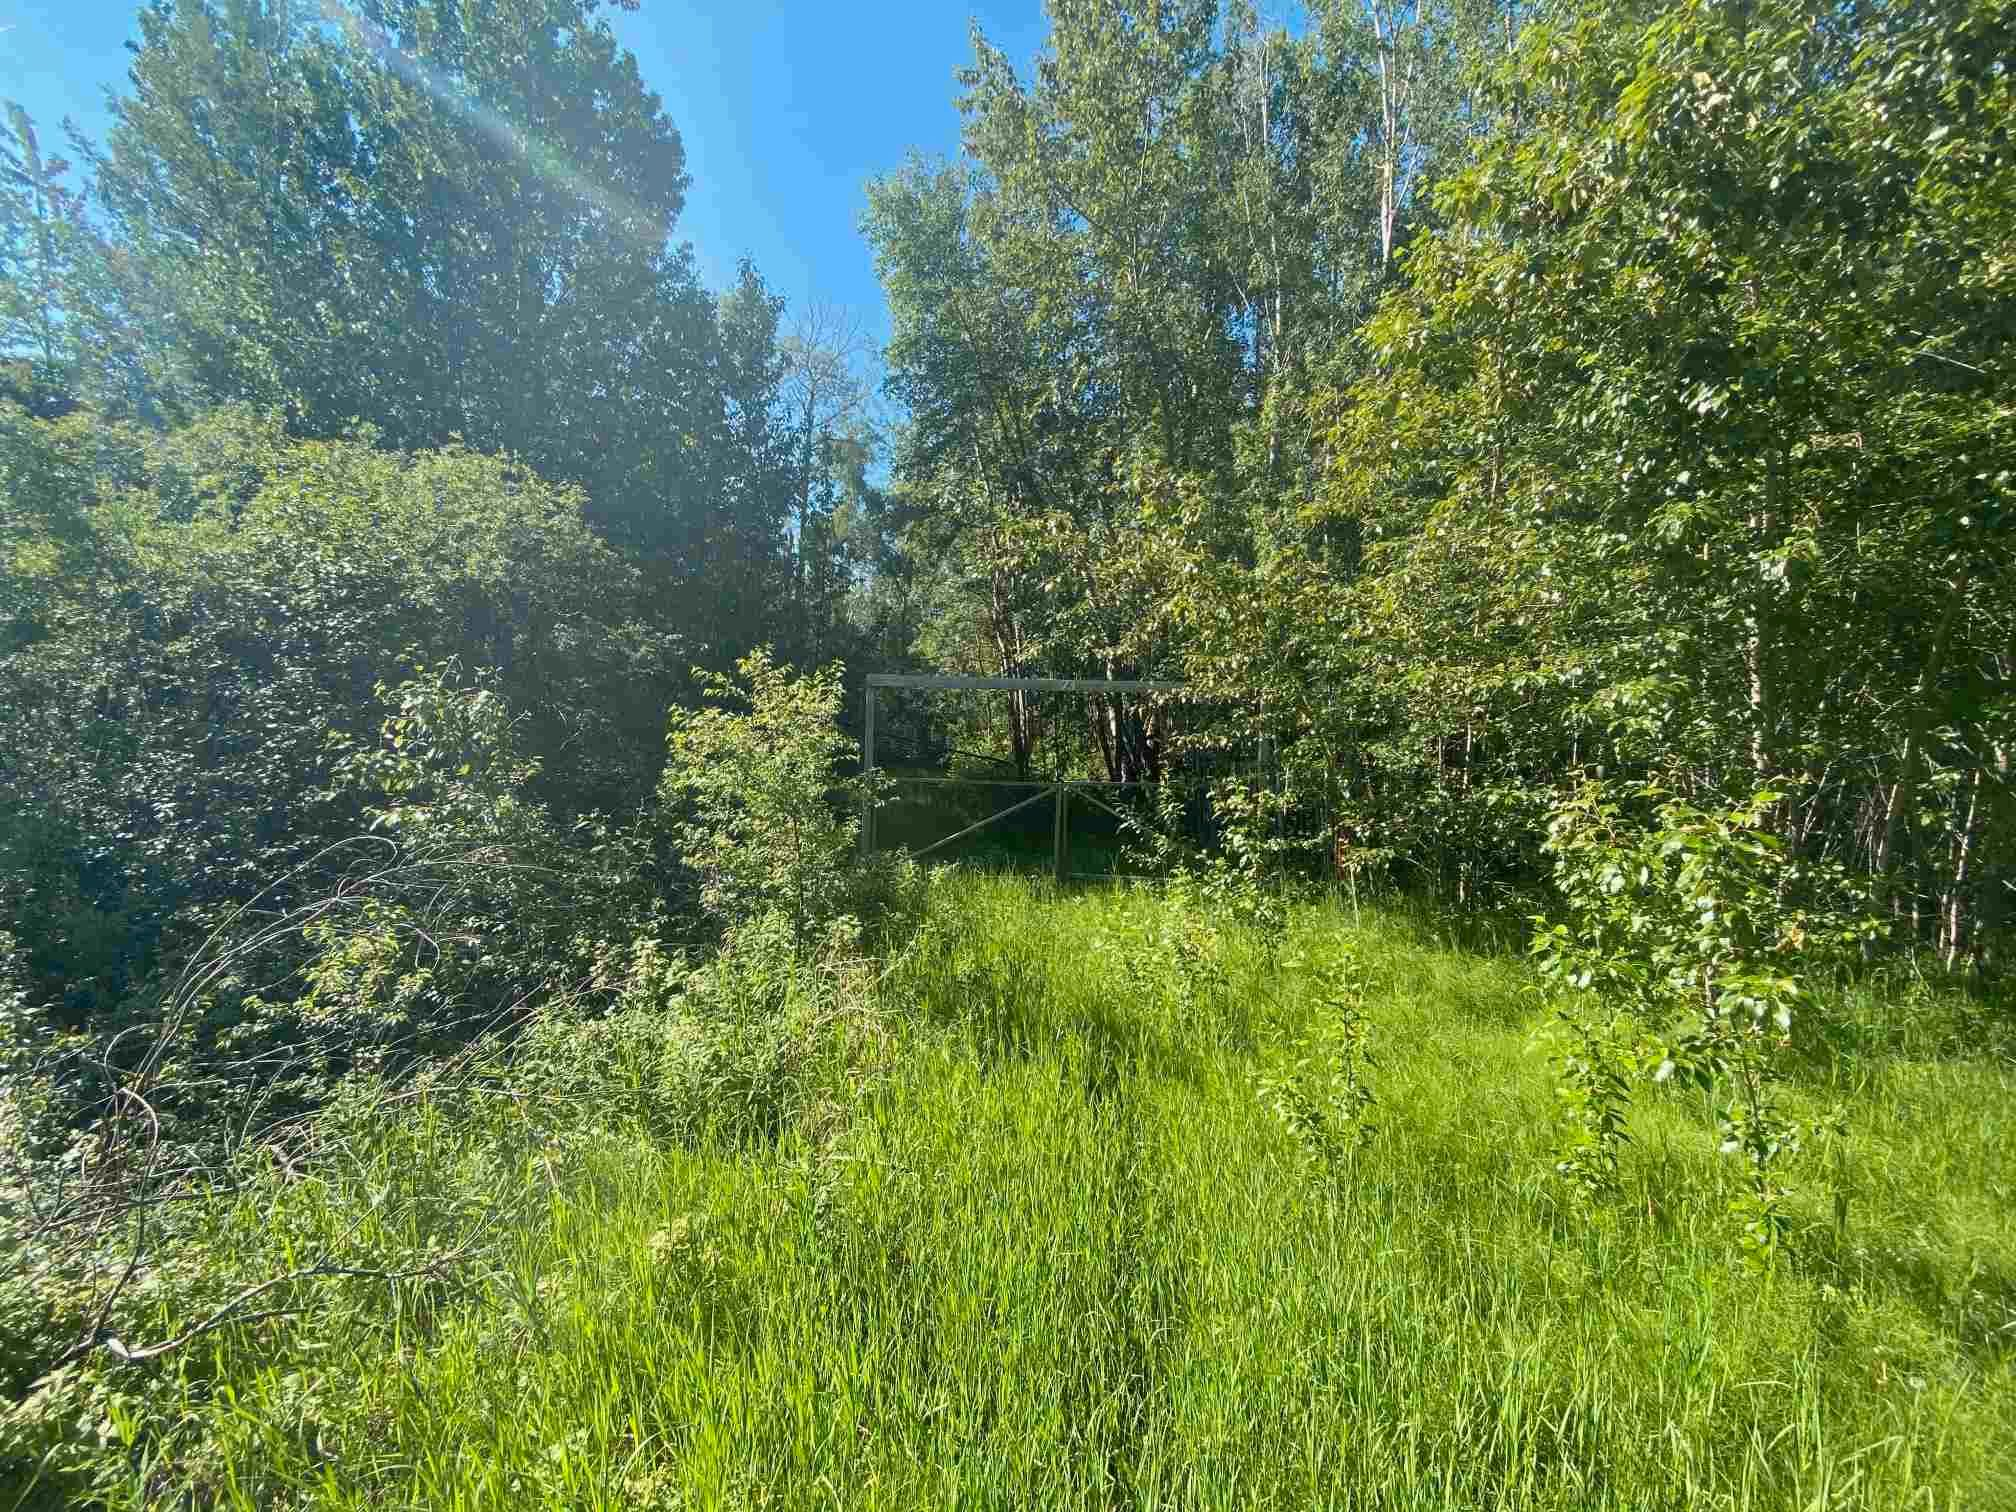 Main Photo: 73 52122 RGE RD 210: Rural Strathcona County Rural Land/Vacant Lot for sale : MLS®# E4252259